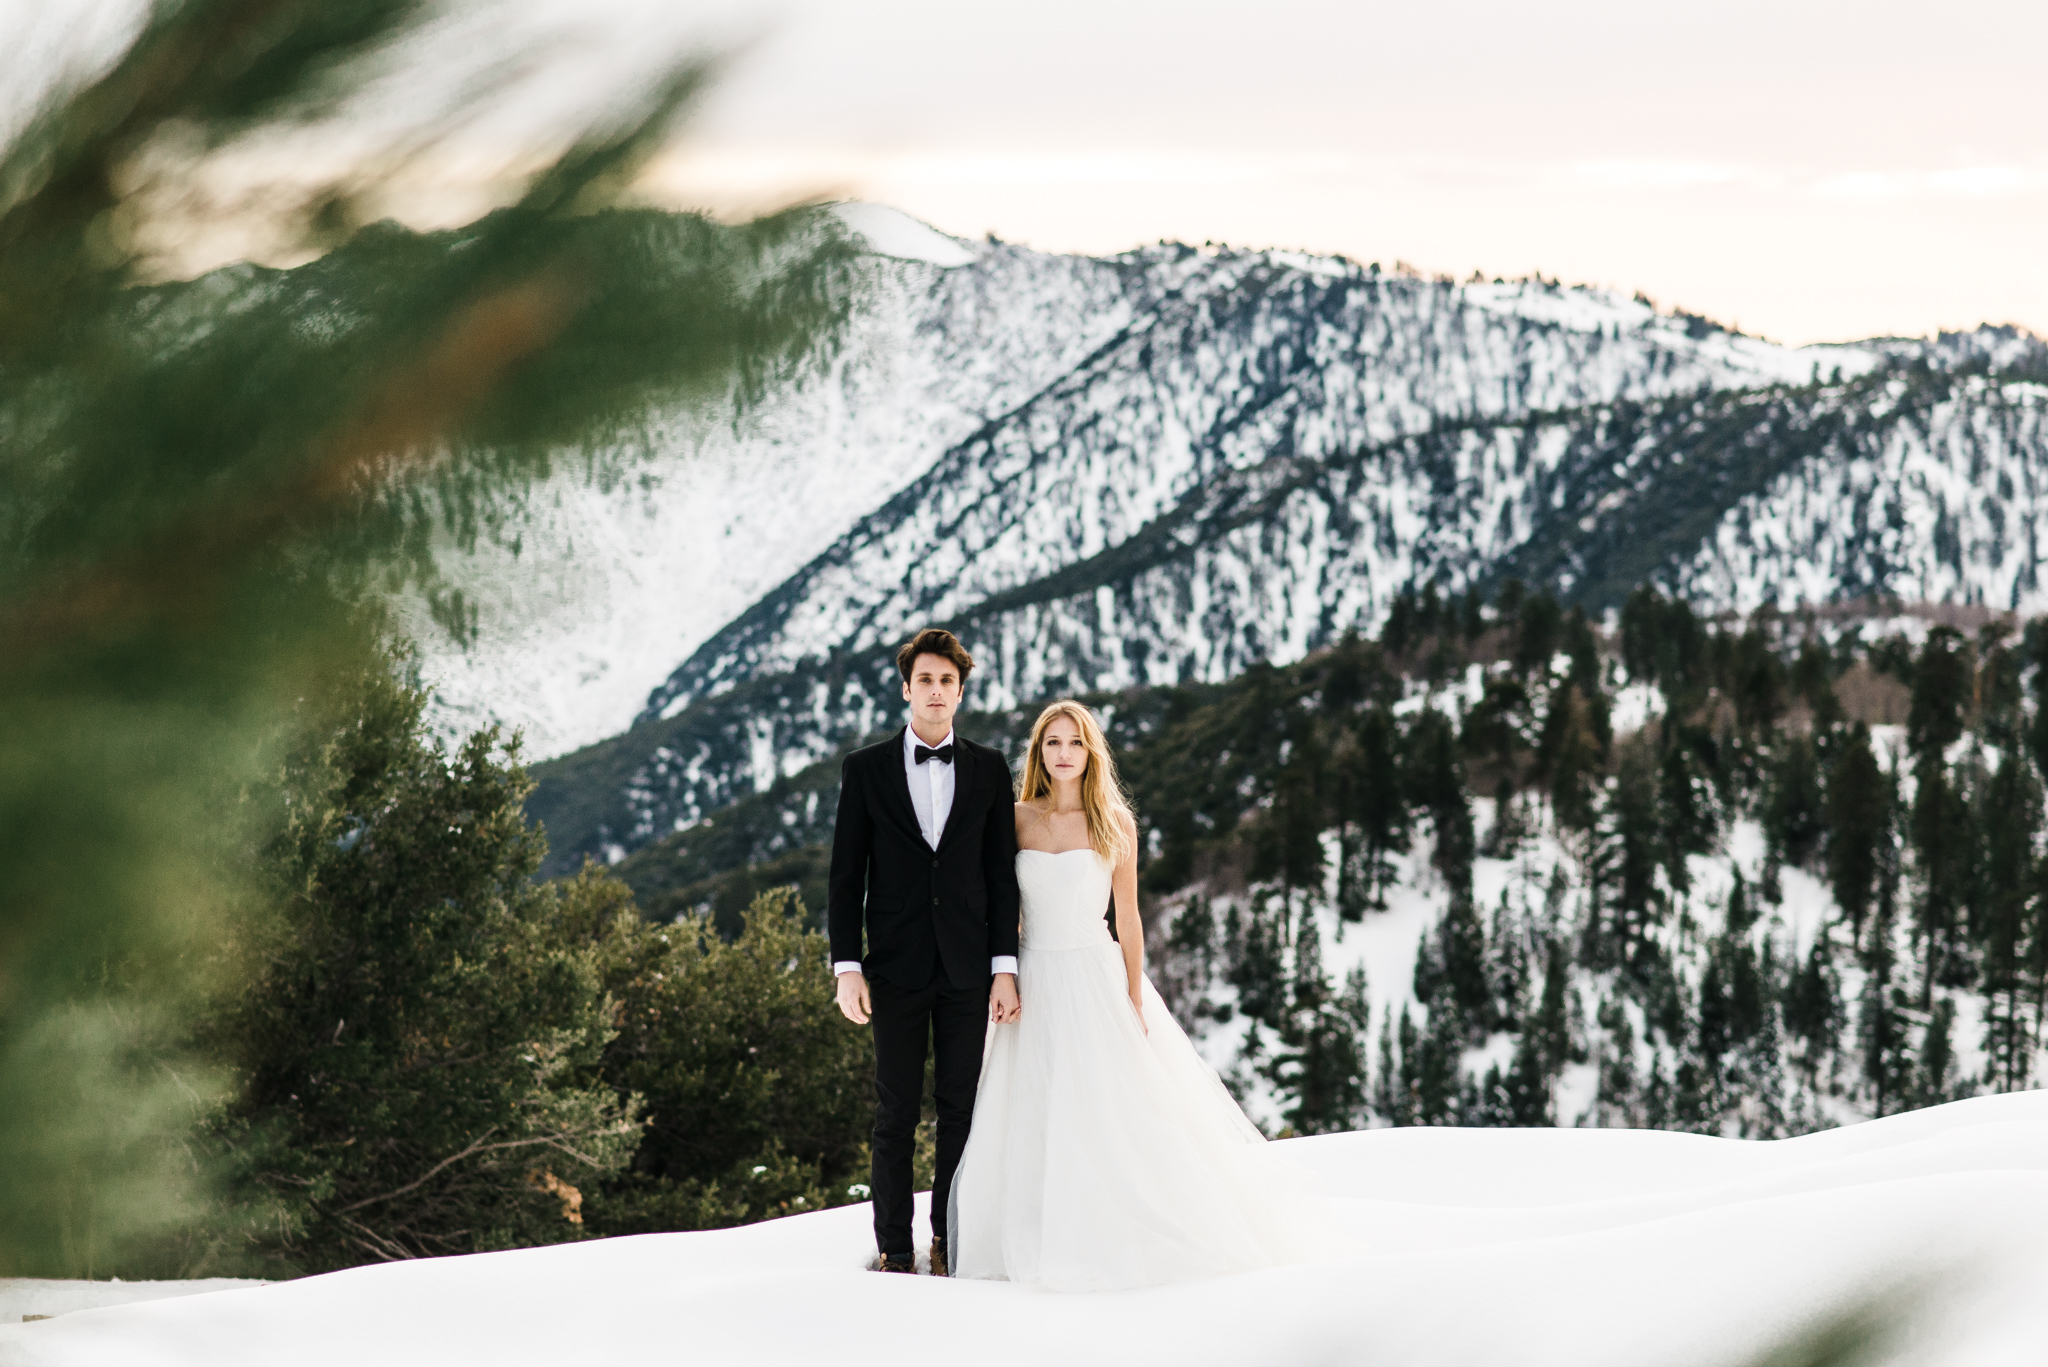 ©Isaiah & Taylor Photography - Ben & Kadin Honeymoon-037.jpg